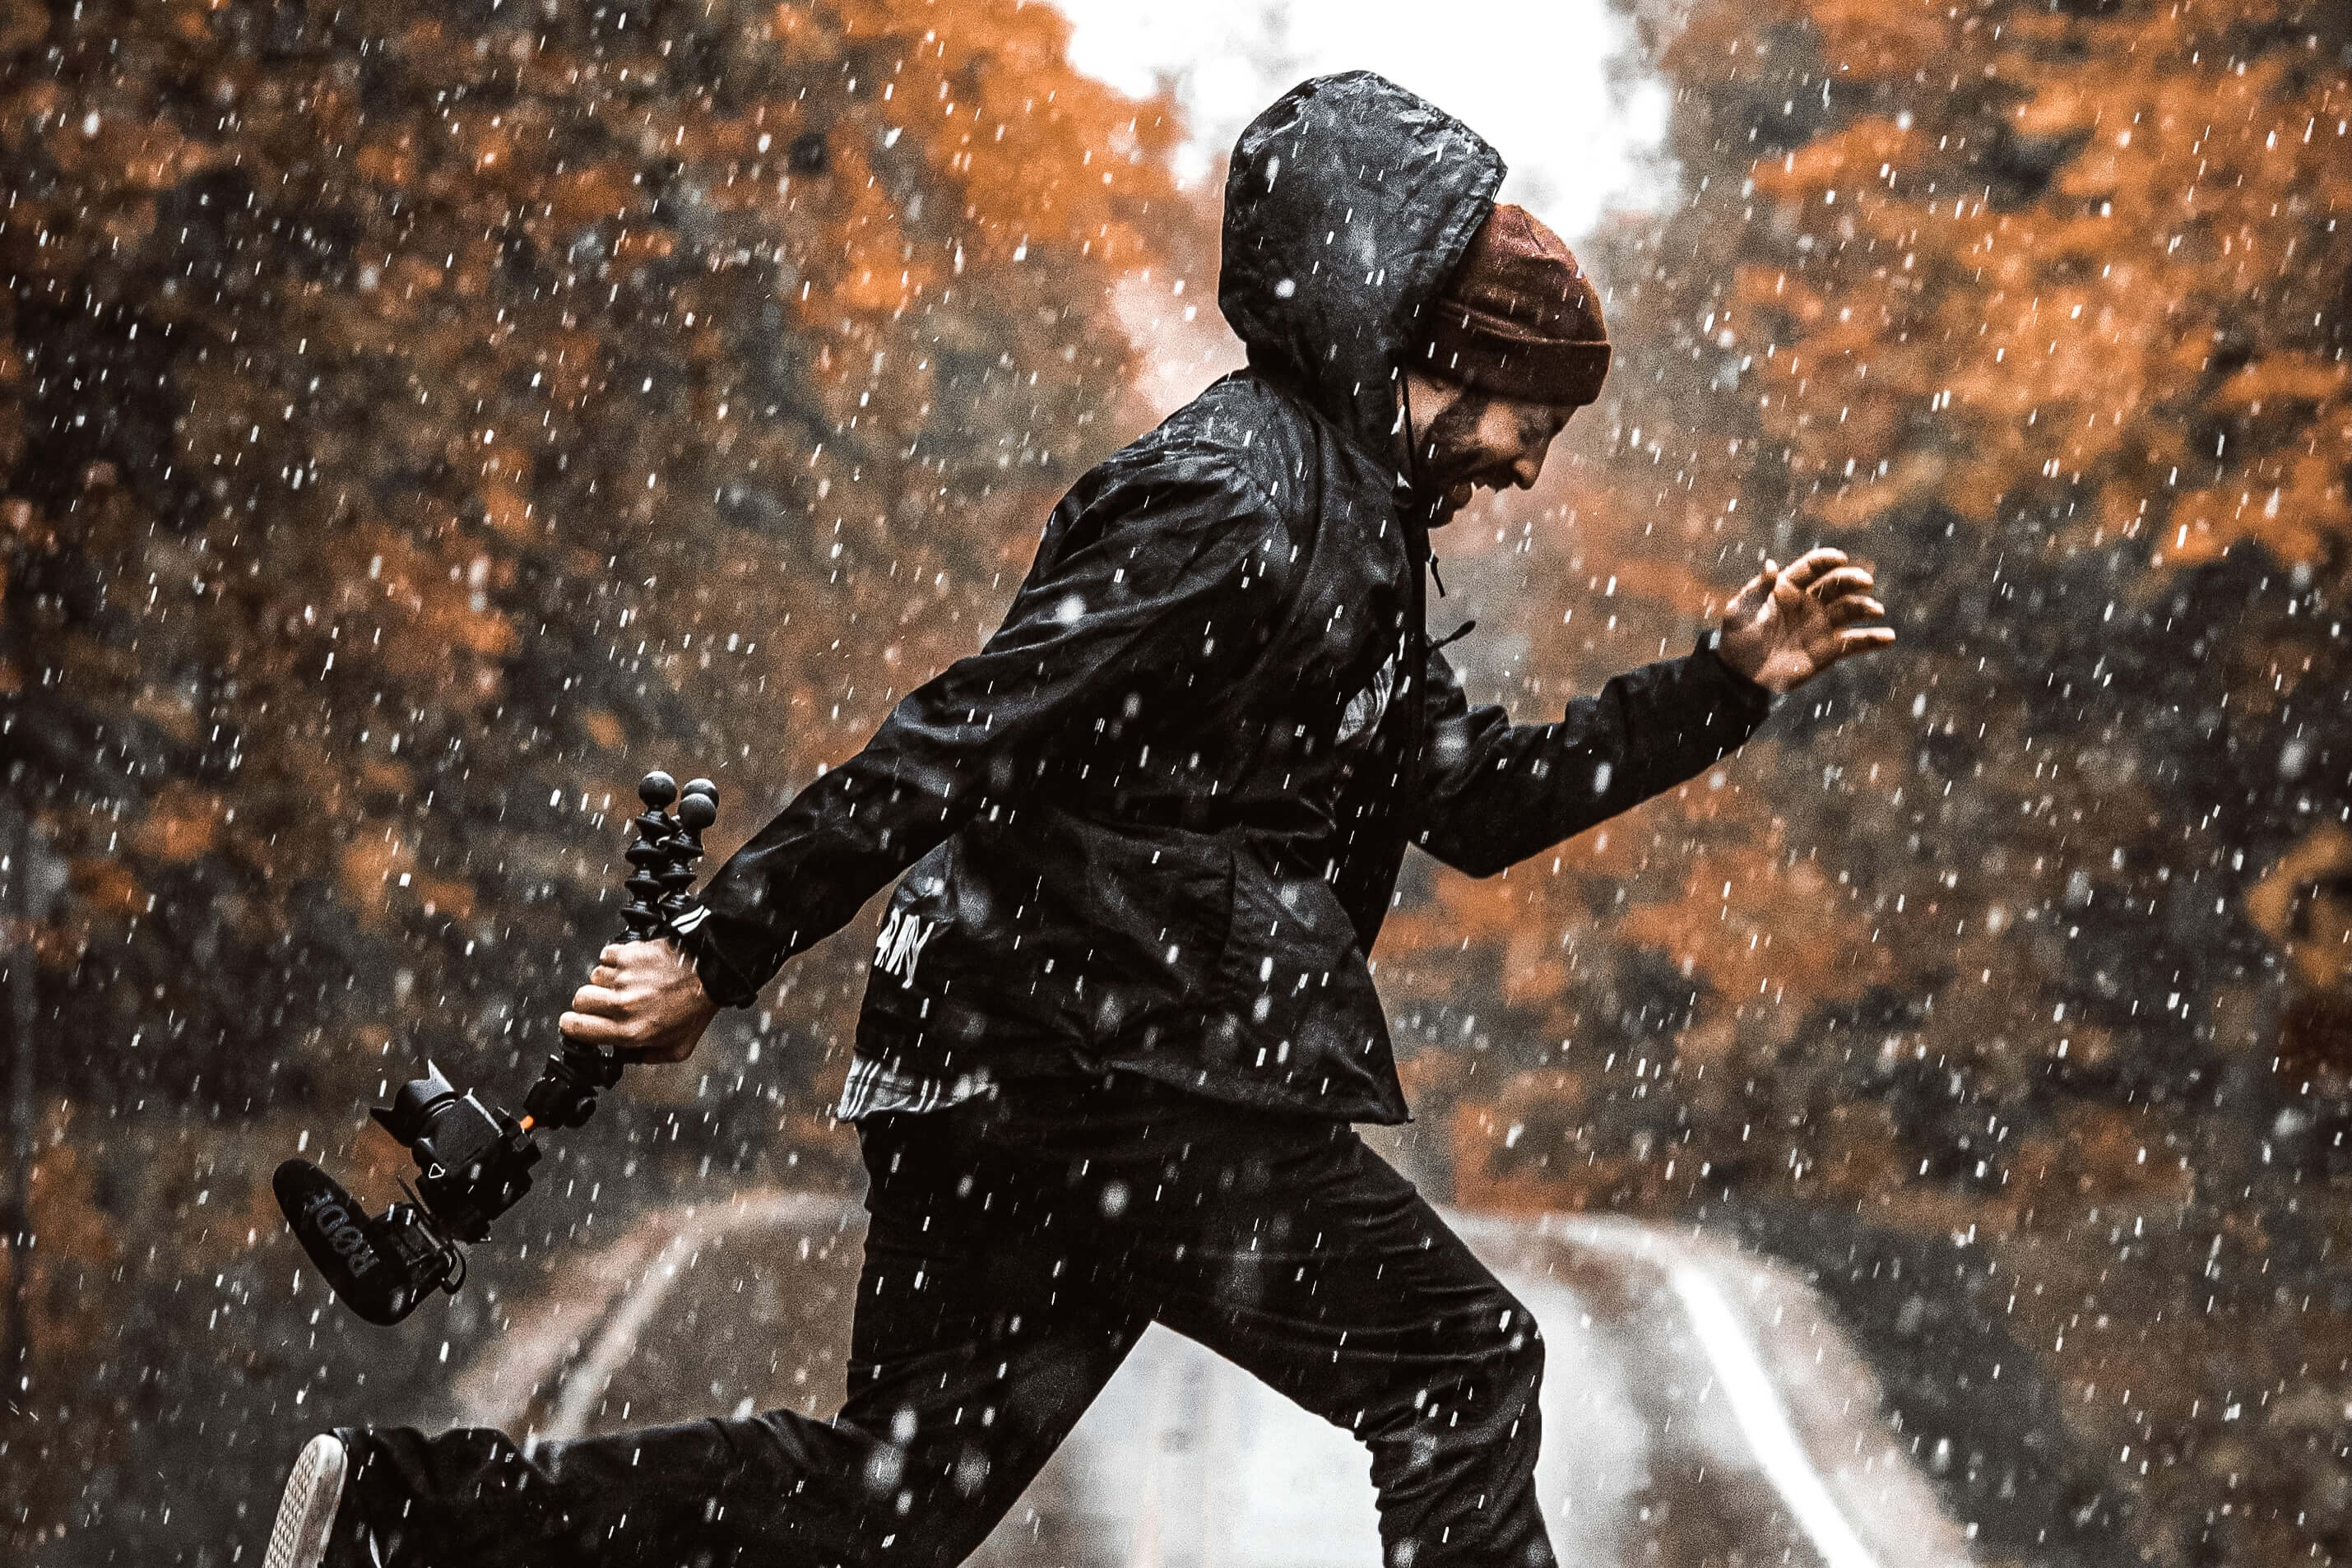 Workout tips: Make the most of exercise in the rain